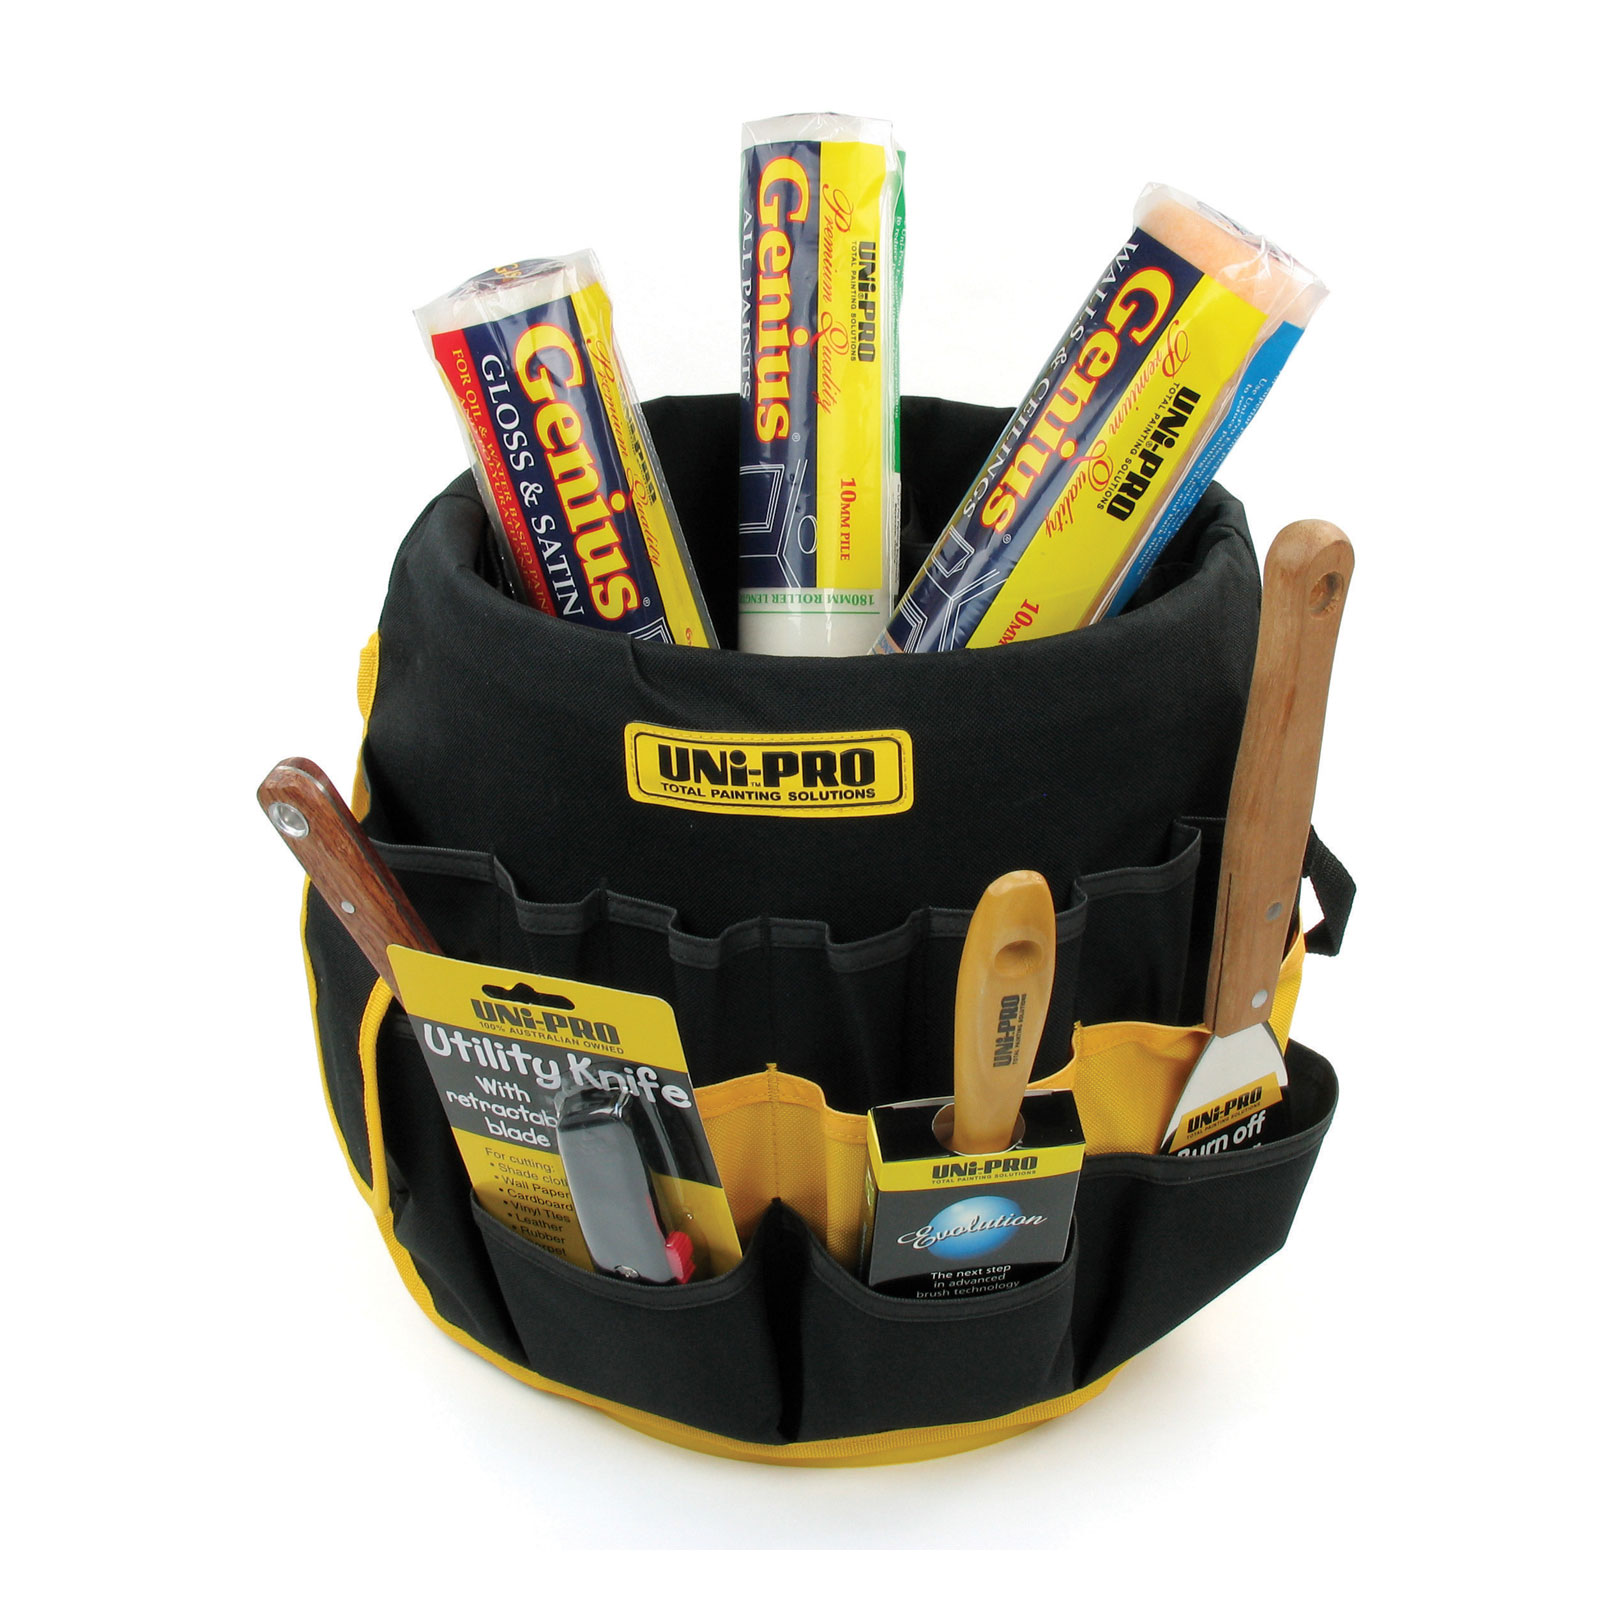 UNi-PRO Canvas Bucket Tool Tidy